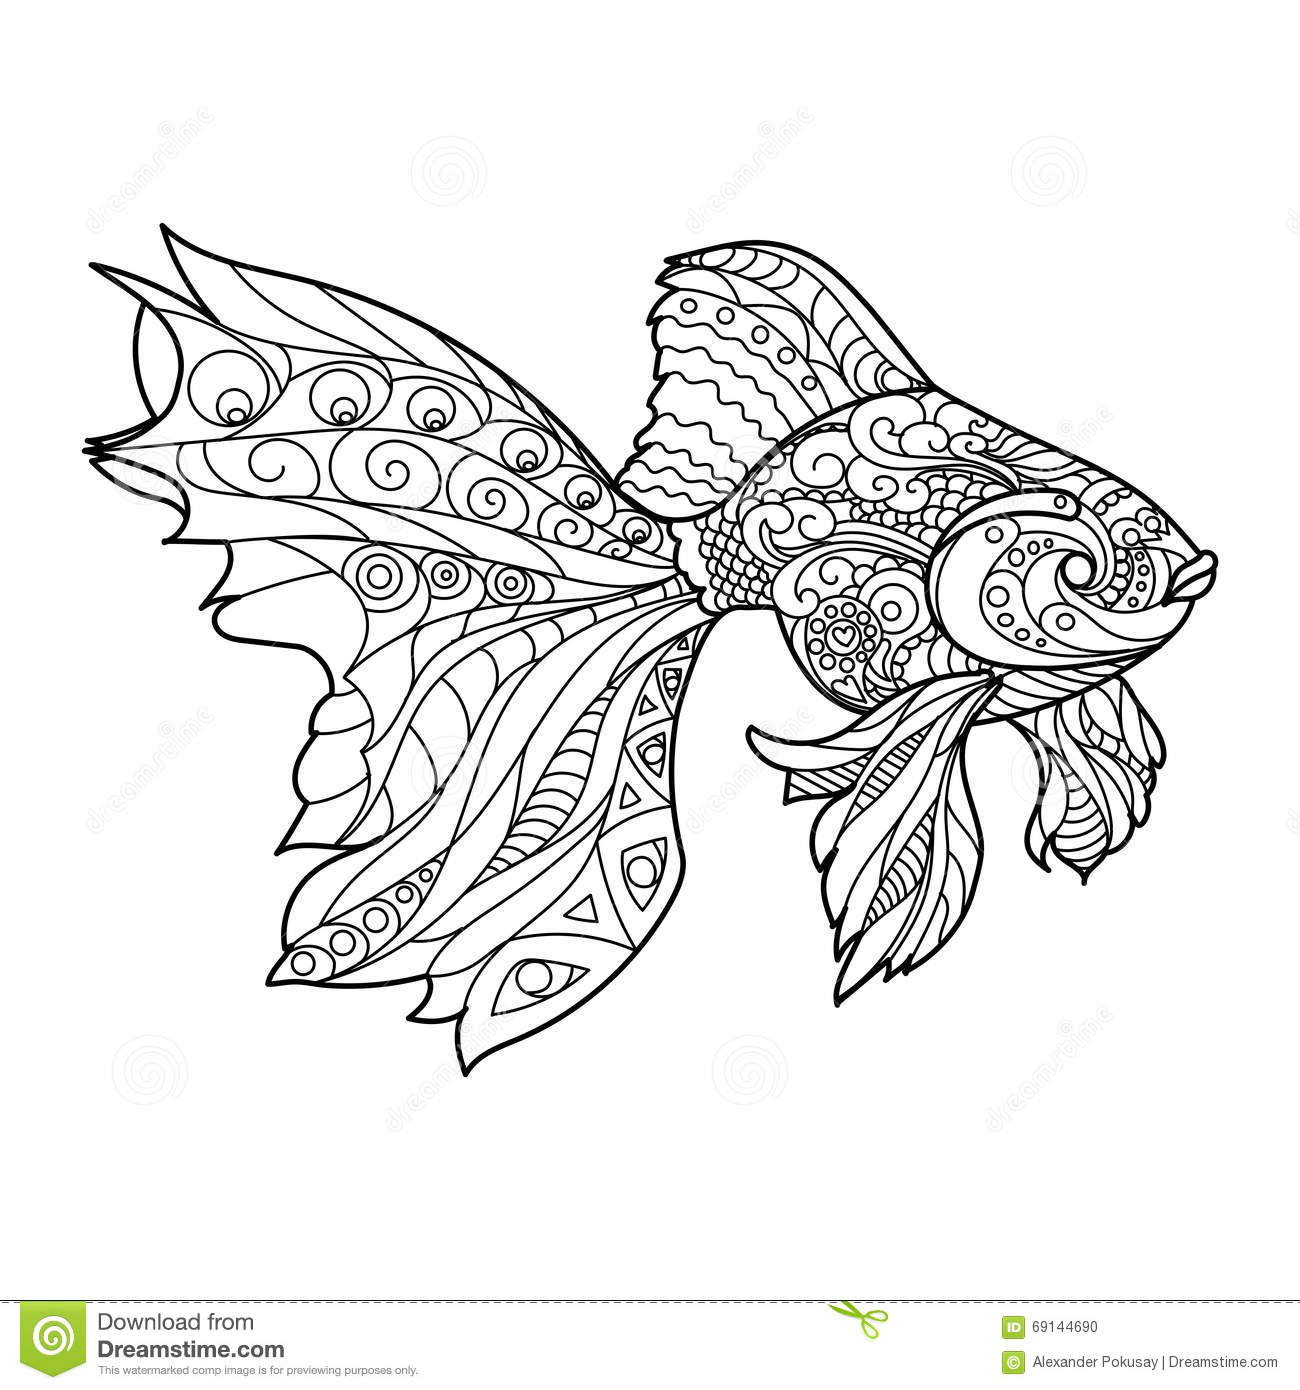 gold fish coloring book adults vector illustration anti stress adult zentangle style black white lines lace 69144690 additionally betta fish coloring pages free 1 on betta fish coloring pages free likewise betta fish coloring pages free 2 on betta fish coloring pages free also with betta fish coloring pages free 3 on betta fish coloring pages free further betta fish coloring pages free 4 on betta fish coloring pages free